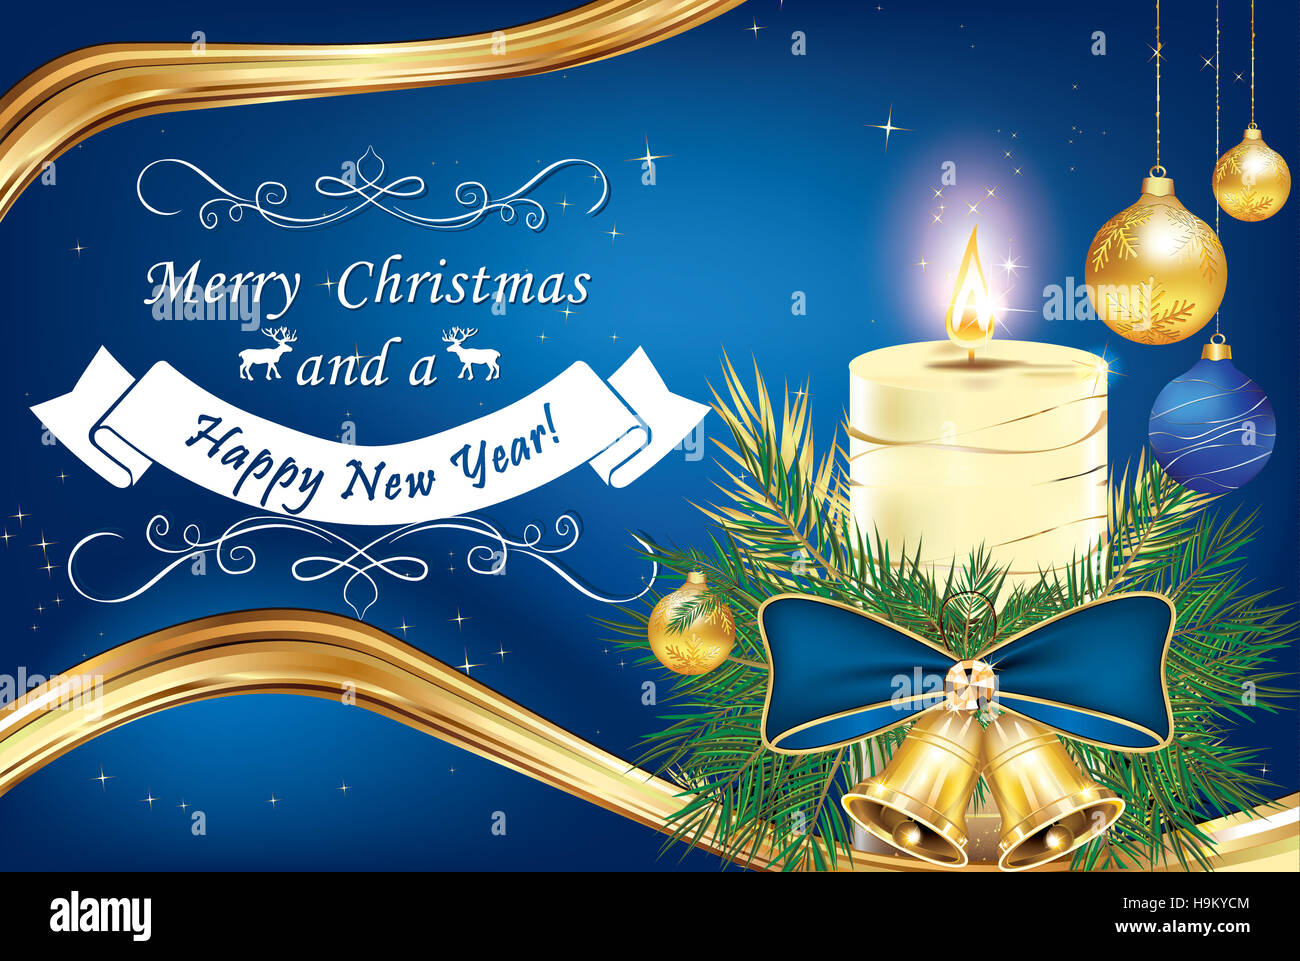 merry christmas and happy new year greeting card for winter holidays with candle blue ribbon and pine tree branches and christ